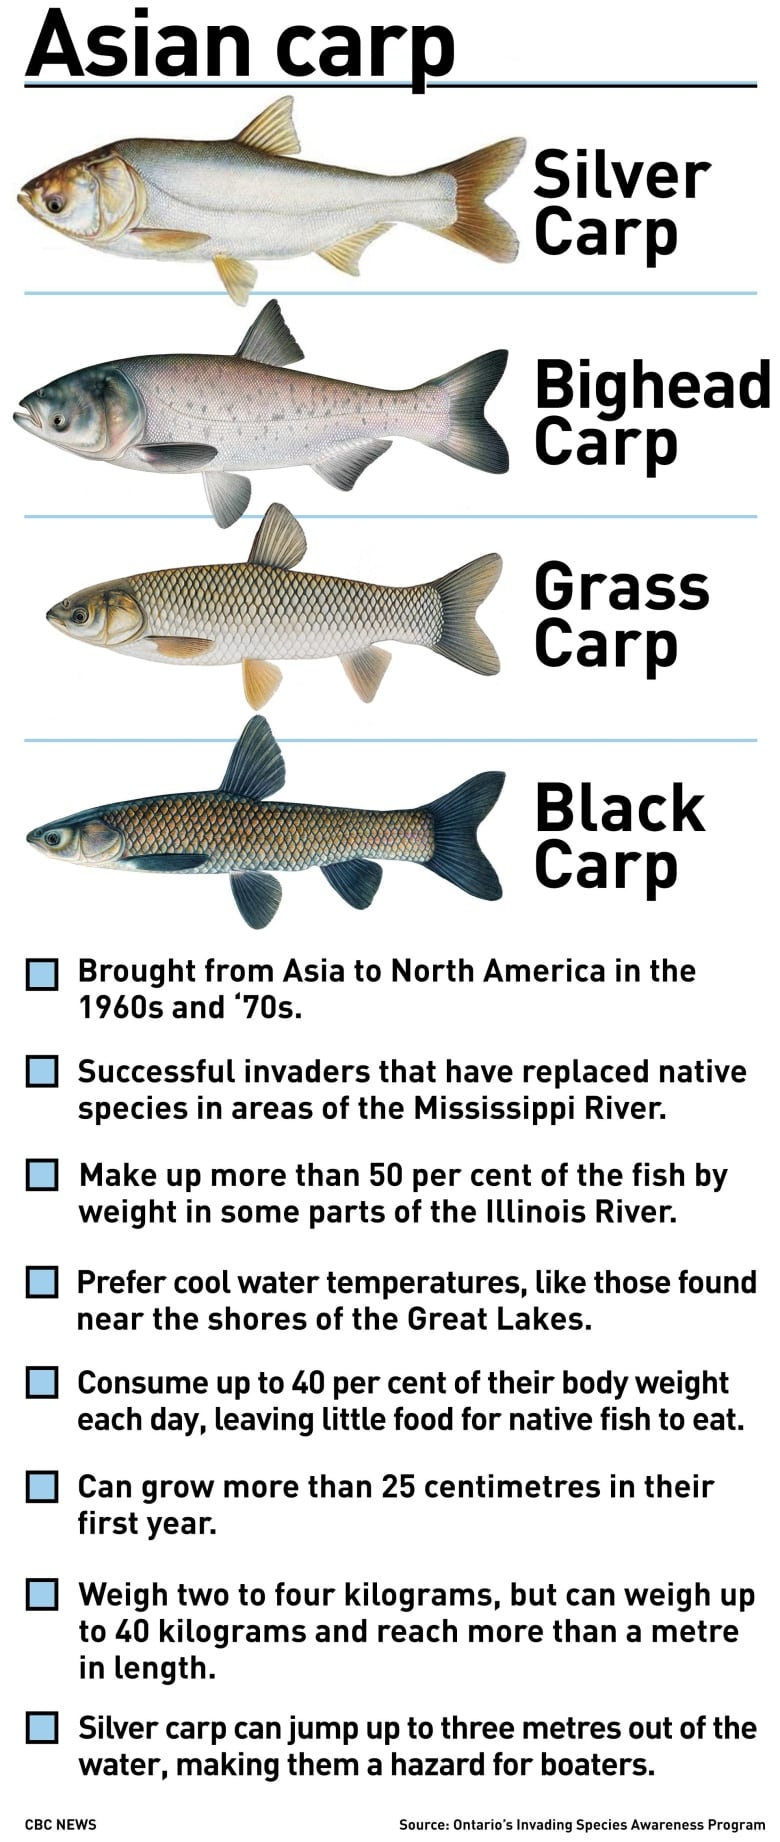 Great Lakes mayors call for action, alternatives to dealing with invasive Asian carp